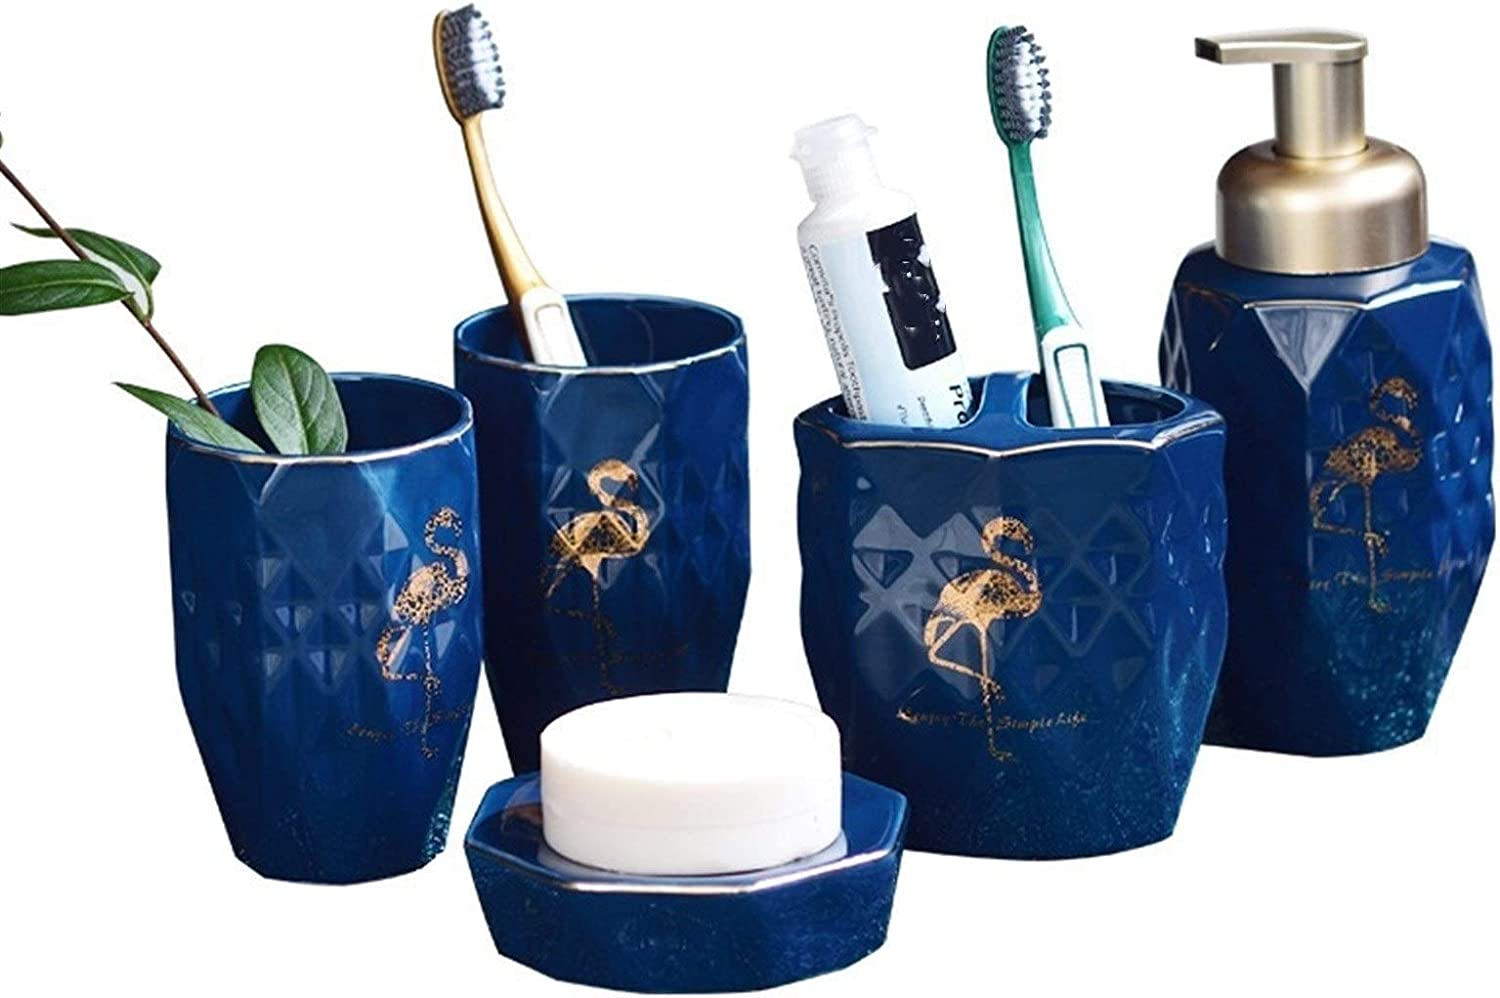 STPUS Max 48% OFF Long Beach Mall Bathroom Accessories Set Cup Toothbrush Creative Household